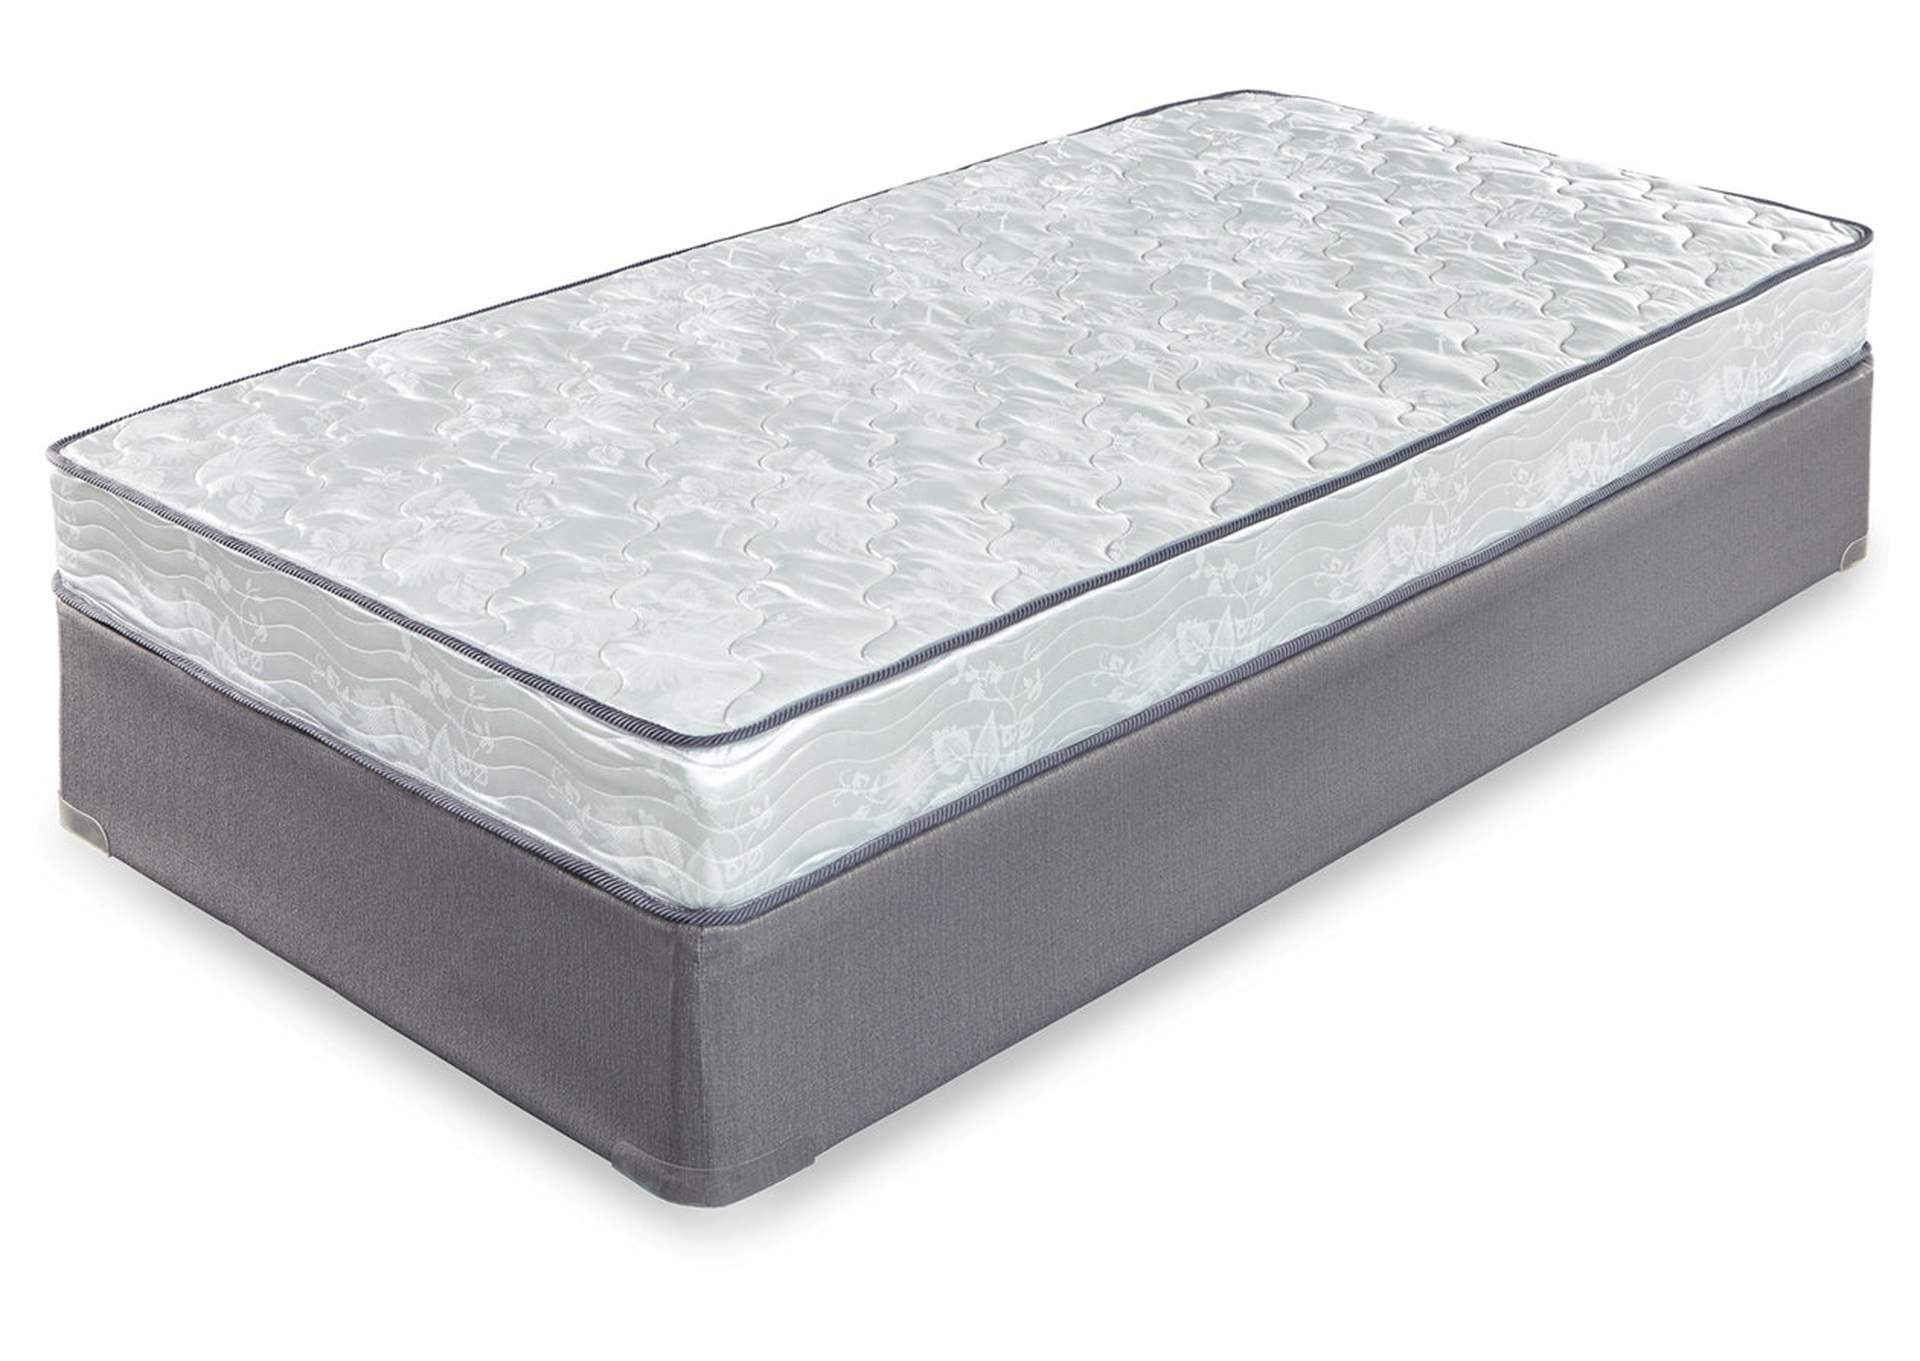 6 Inch Bonell Queen Mattress,Direct To Consumer Express